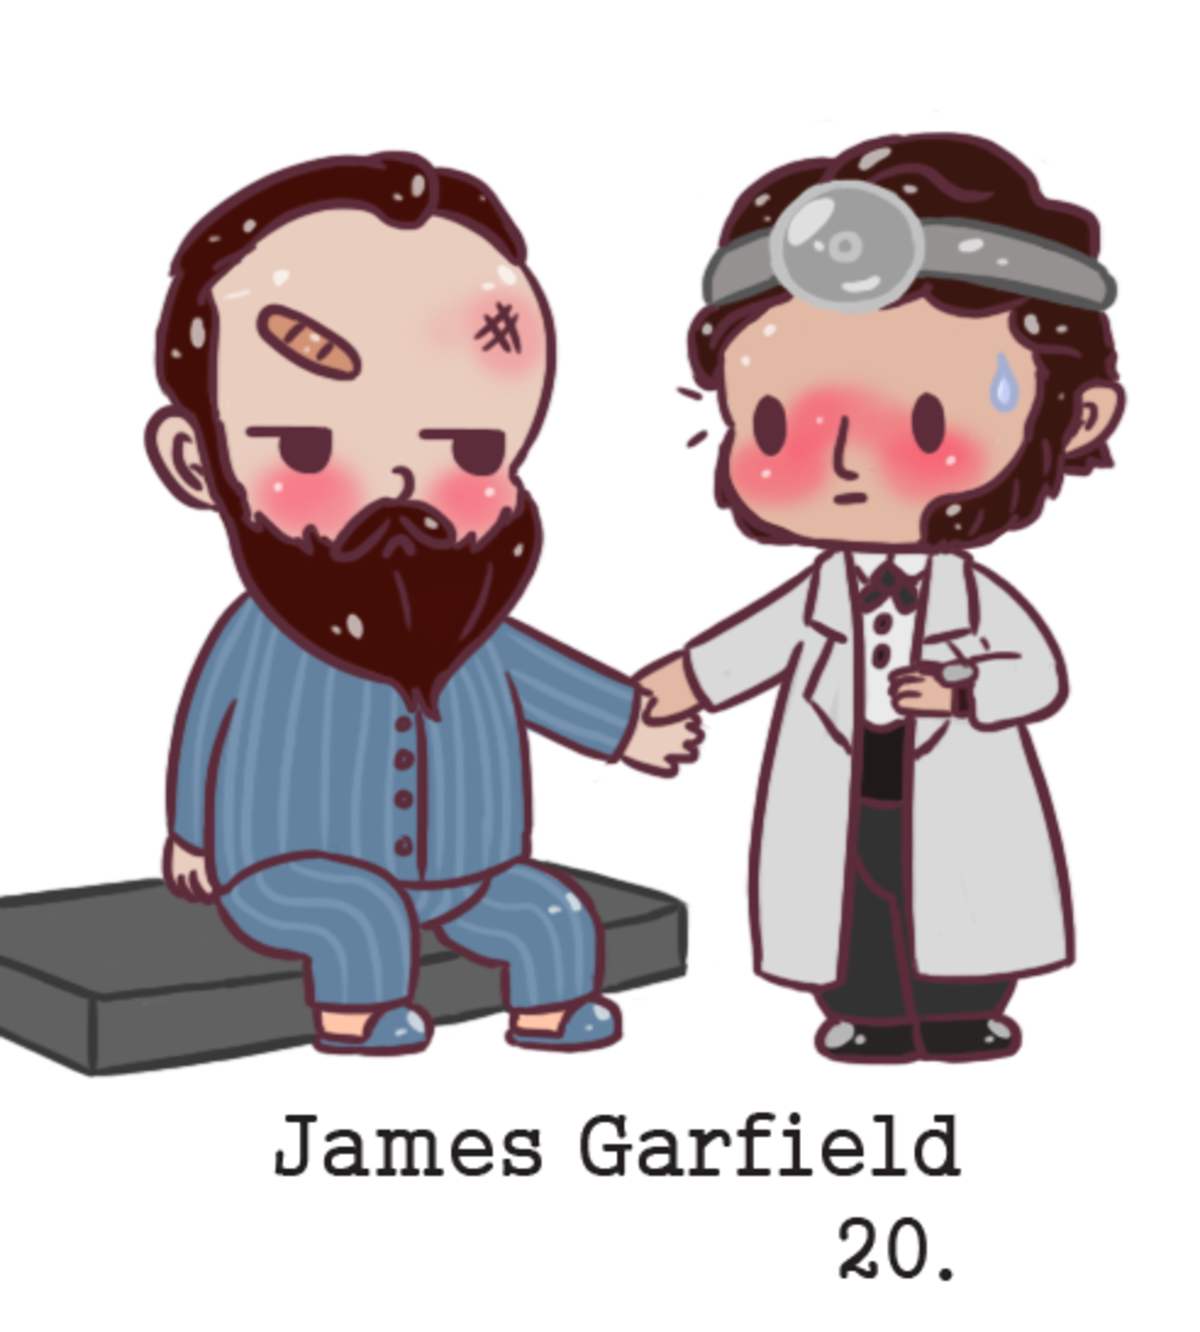 chibi James Garfield. He was shot and probably could of lived but the Doctor didn't believe in germ theory and basically killed him. The first and foremost thin